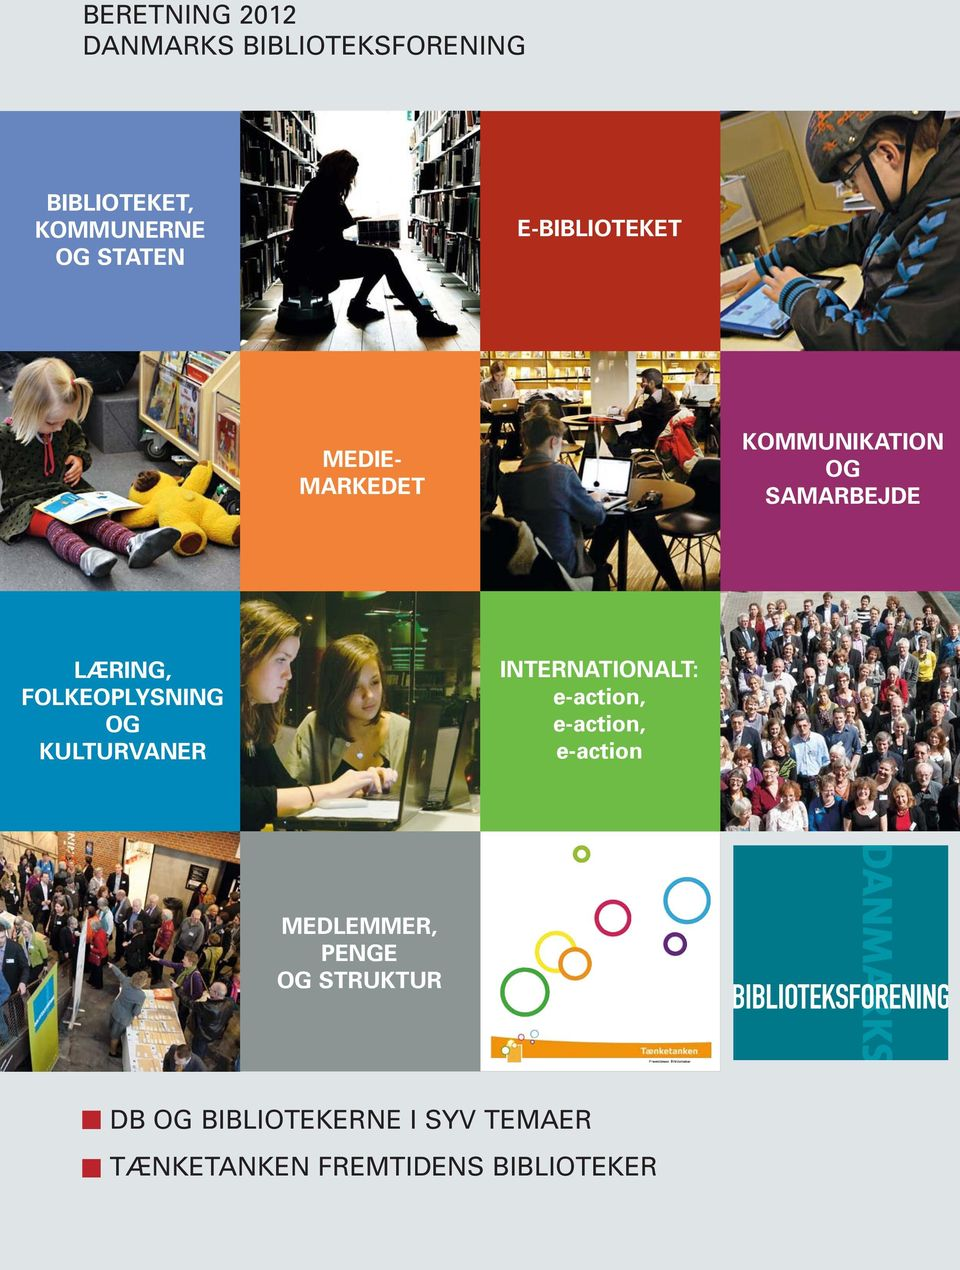 FOLKEOPLYSNING OG KULTURVANER INTERNATIONALT: e-action, e-action, e-action